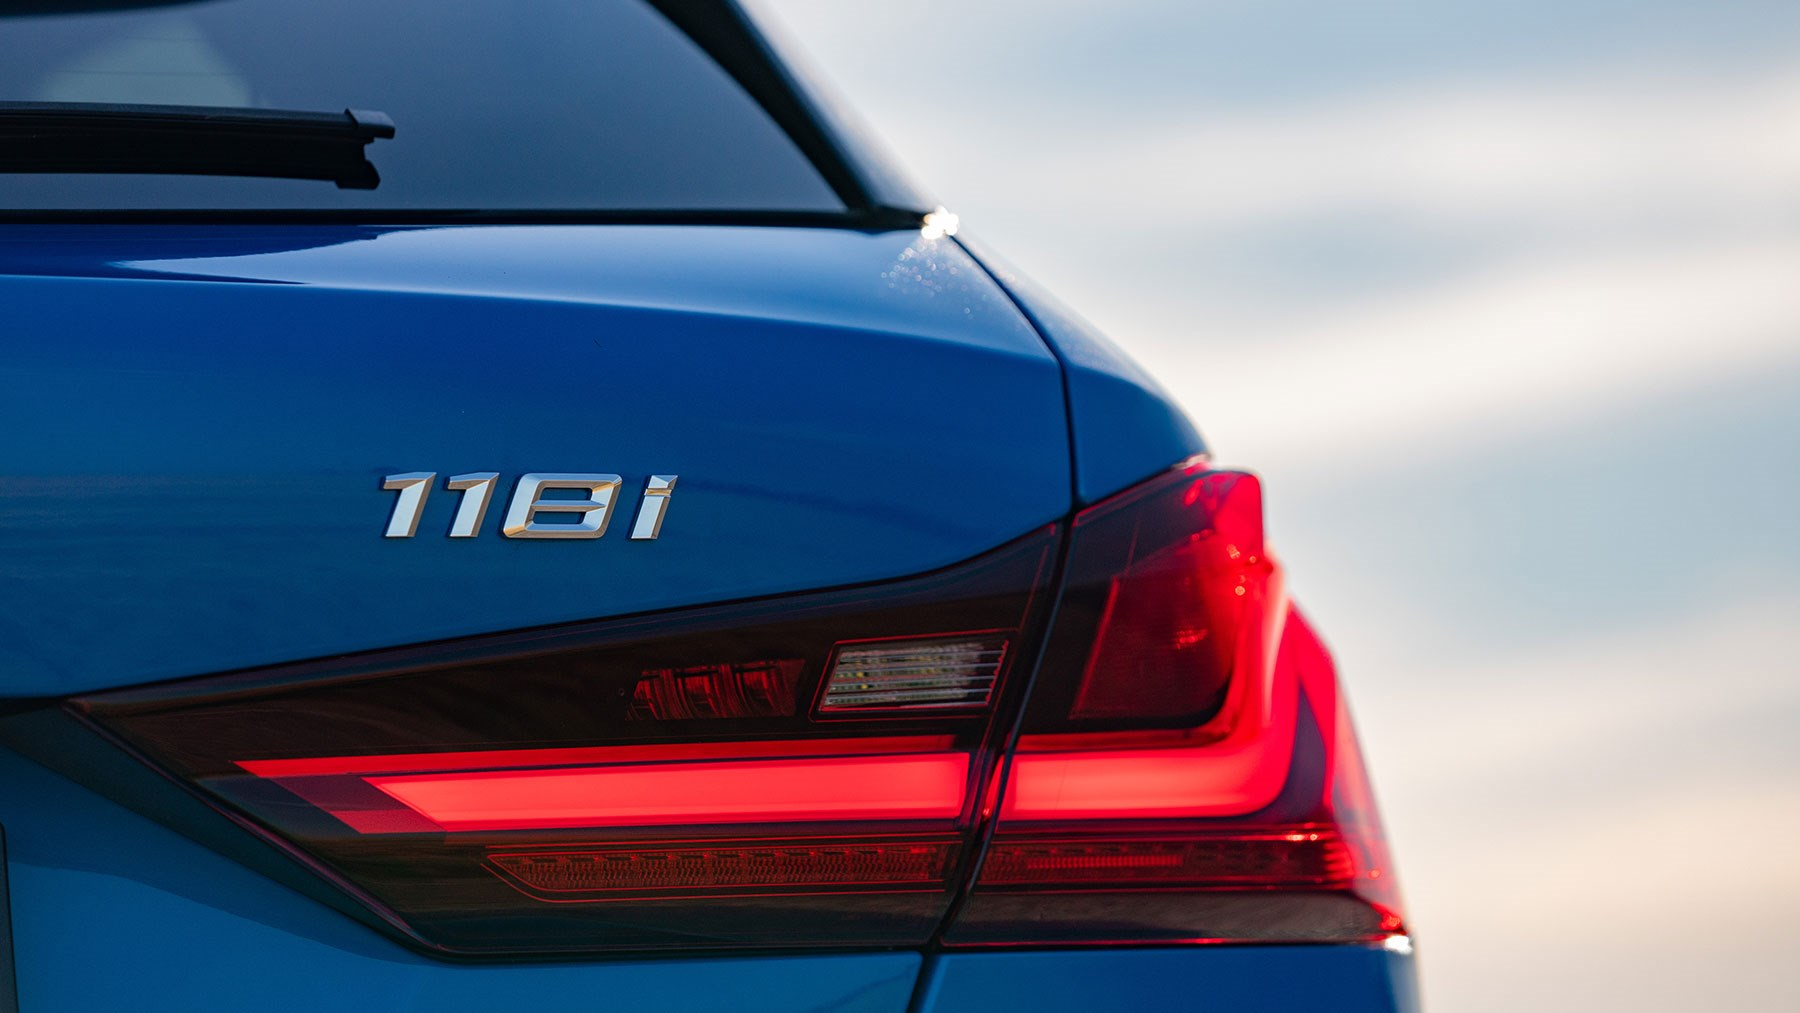 BMW 118i review: we've driven the new 1.5 petrol hatchback in the UK